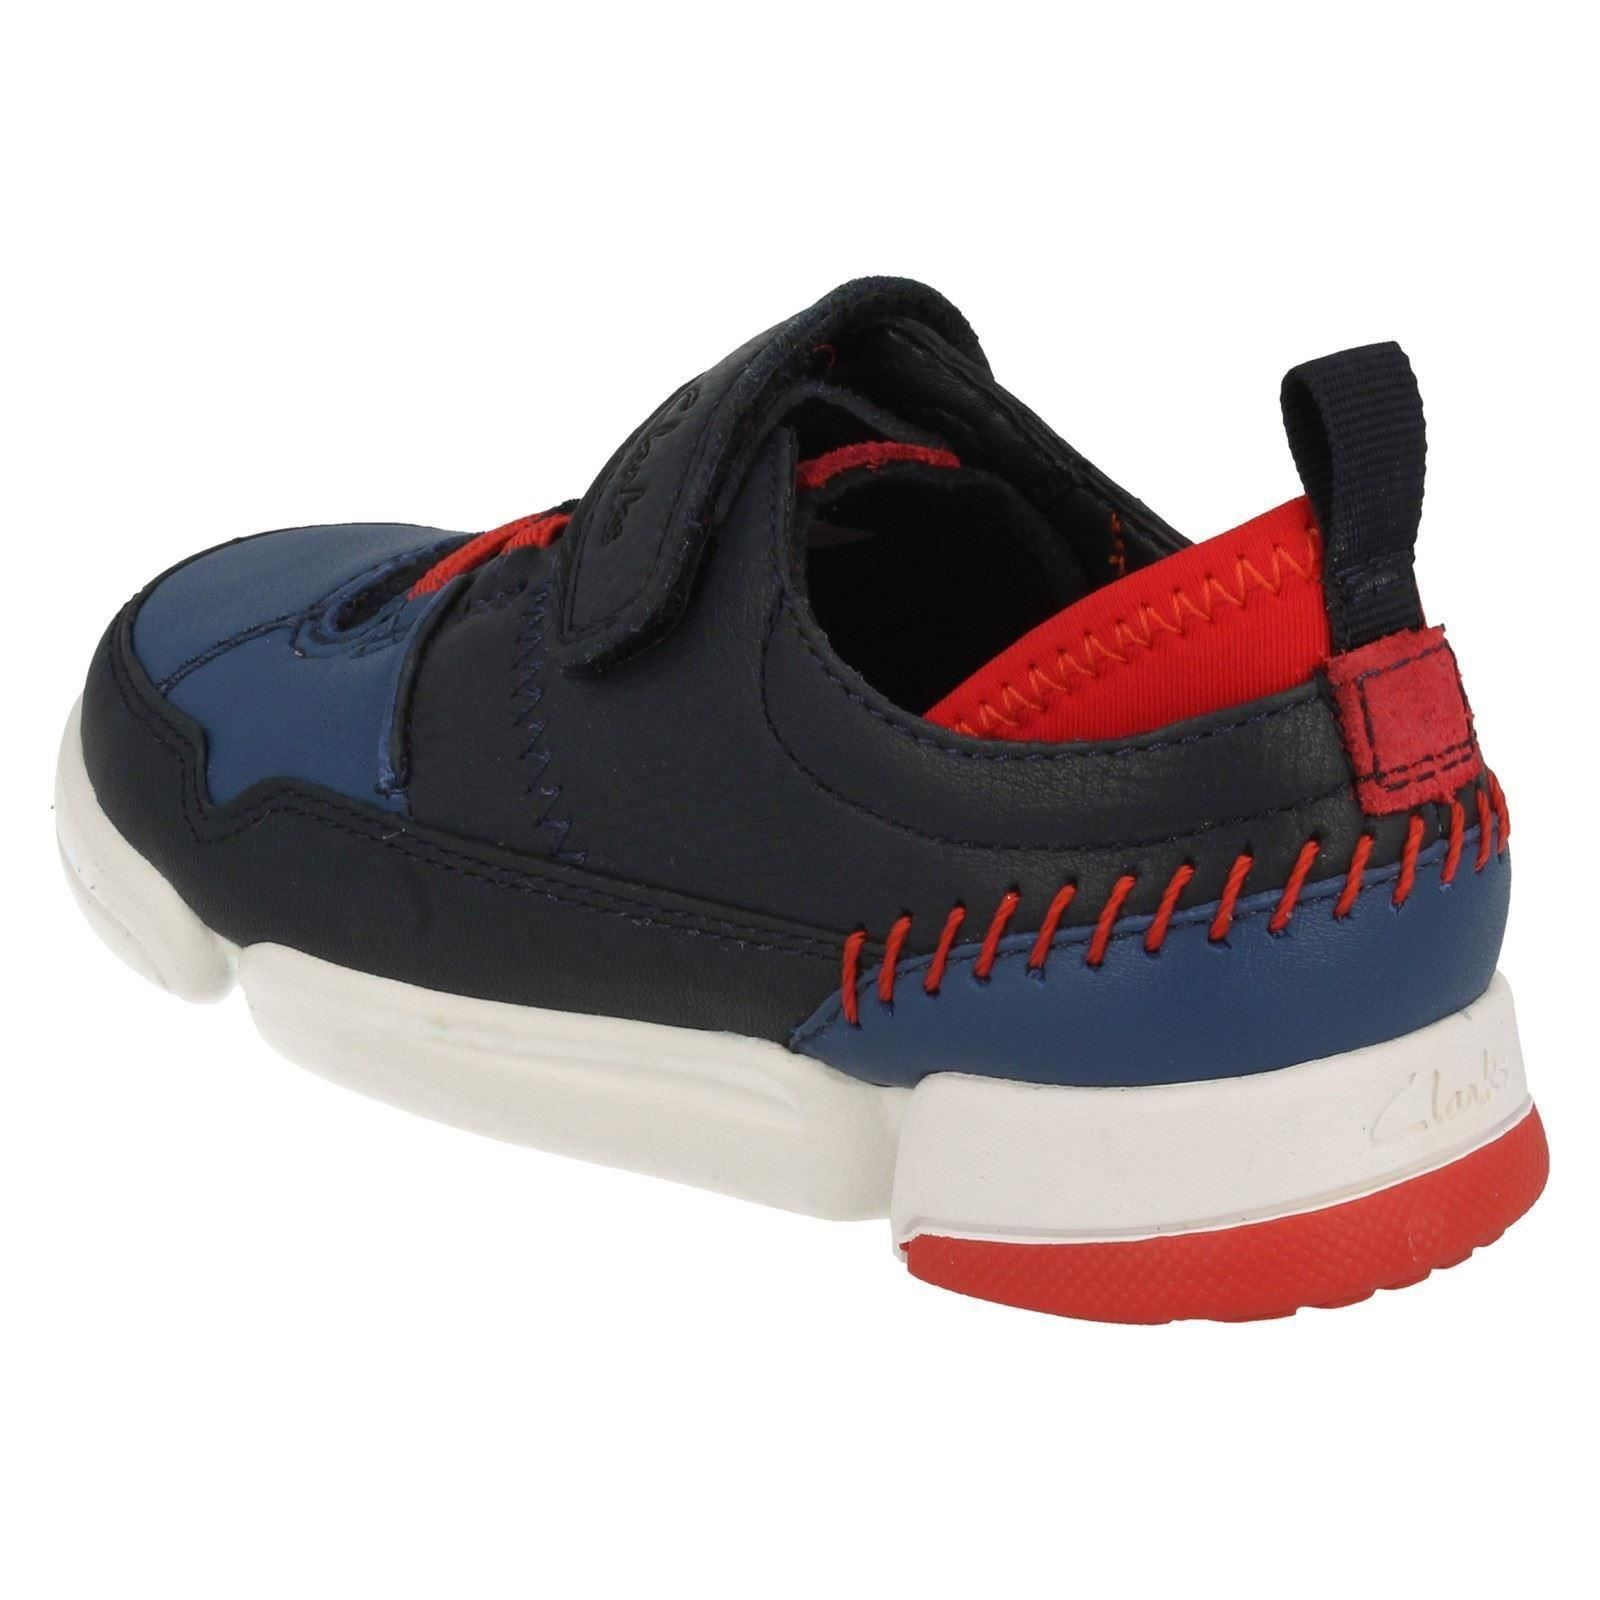 Chicos Casual Shoes Tri Clarks azul Navy Scotty Combi aaUwfrTq